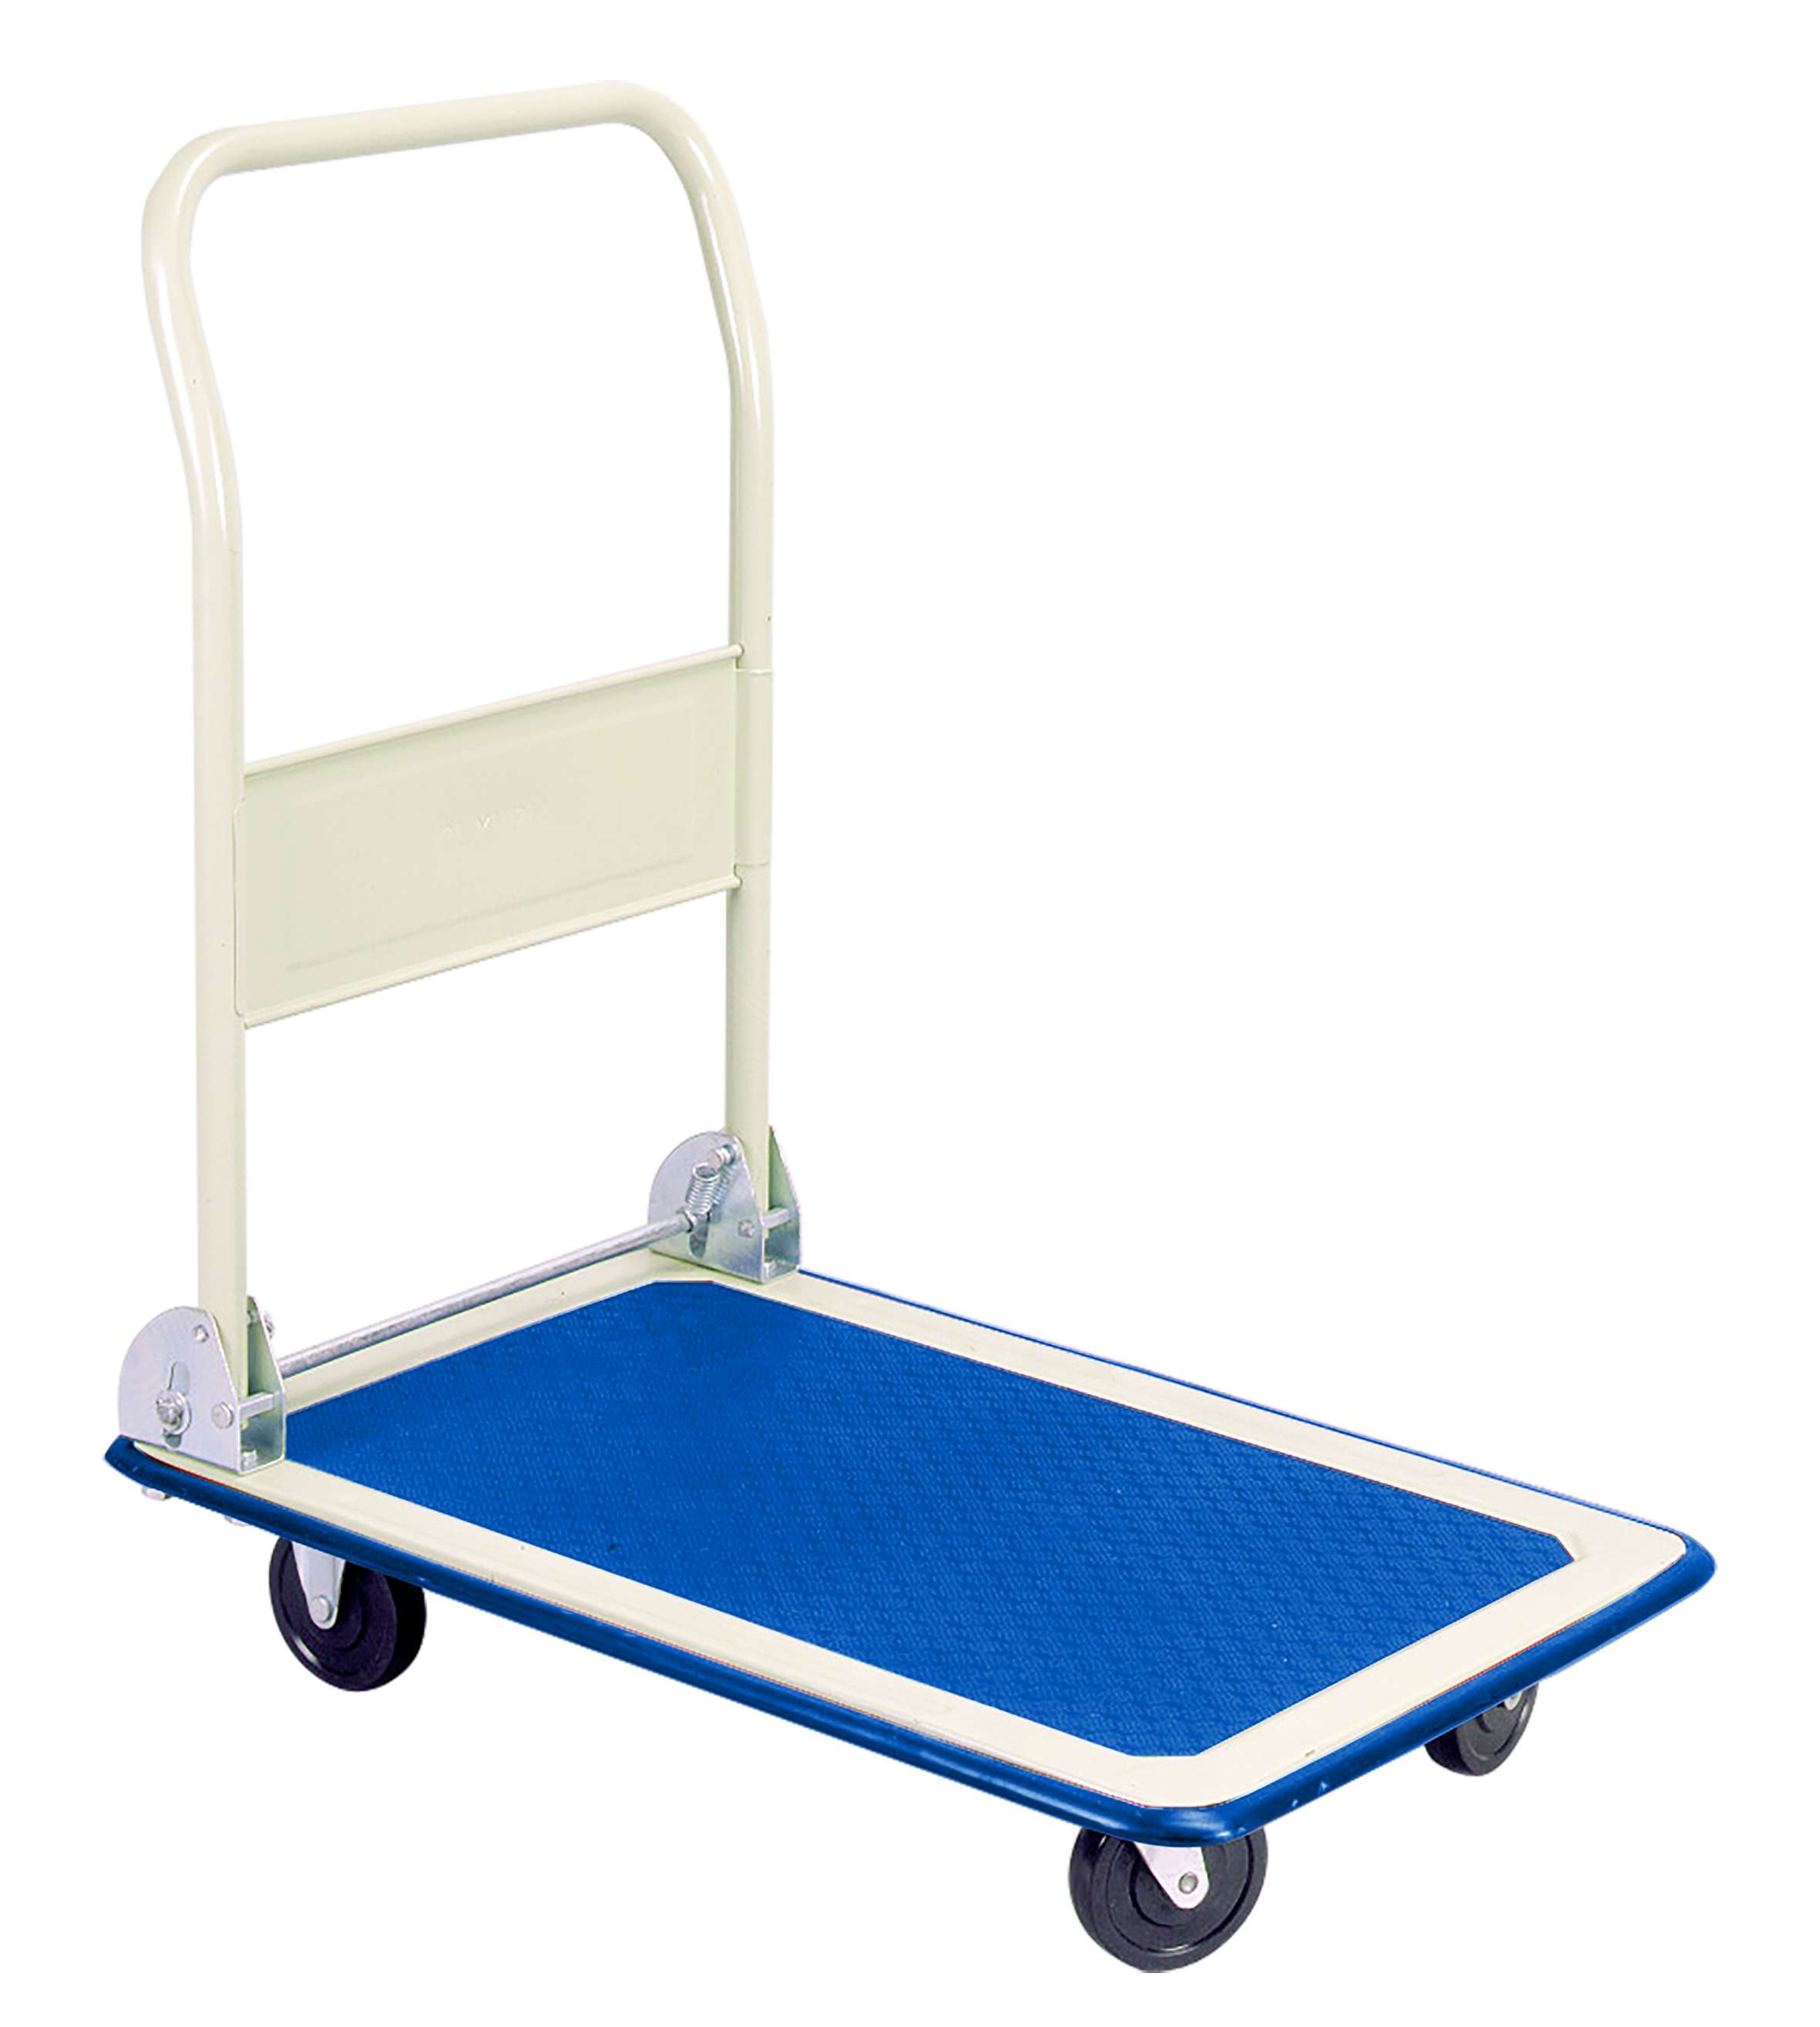 Hyper Tough 300-lb Capacity Folding Platform Truck, 85-180